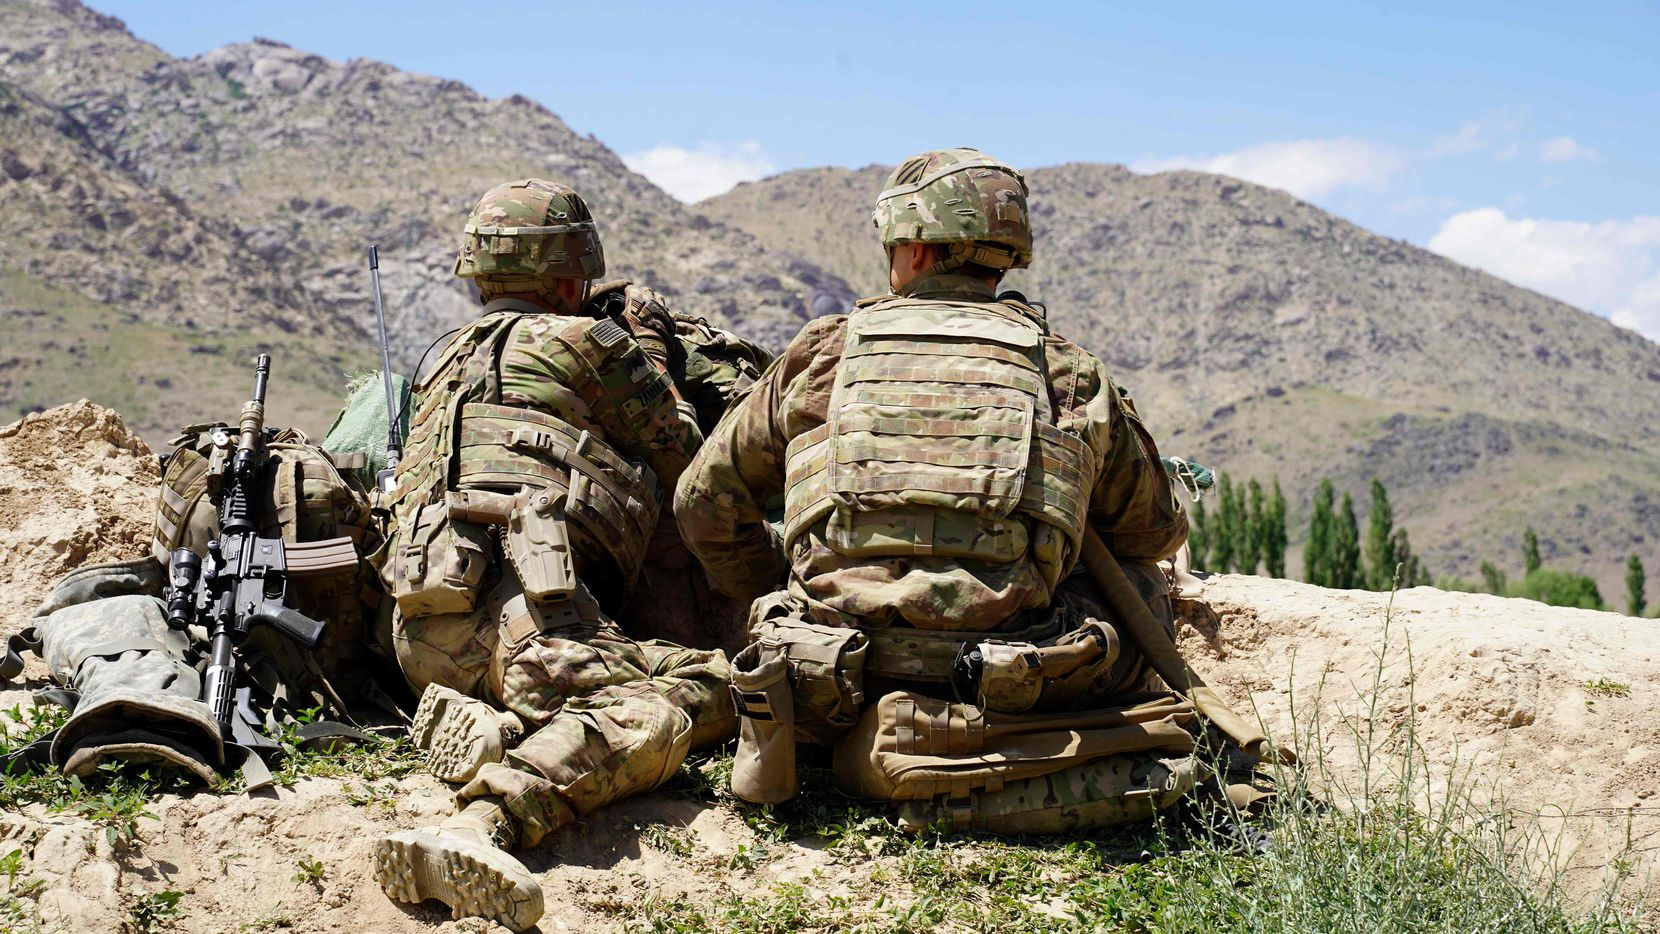 In this June 6, 2019, photo US soldiers look out over hillsides during a visit of the commander of US and NATO forces in Afghanistan Gen. Scott Miller at the Afghan National Army (ANA) checkpoint in Nerkh district of Wardak province. President Donald Trump denied on June 28, 2020, being briefed on intelligence that reportedly showed Russia had offered bounties to Taliban-linked militants for killing US soldiers in Afghanistan.